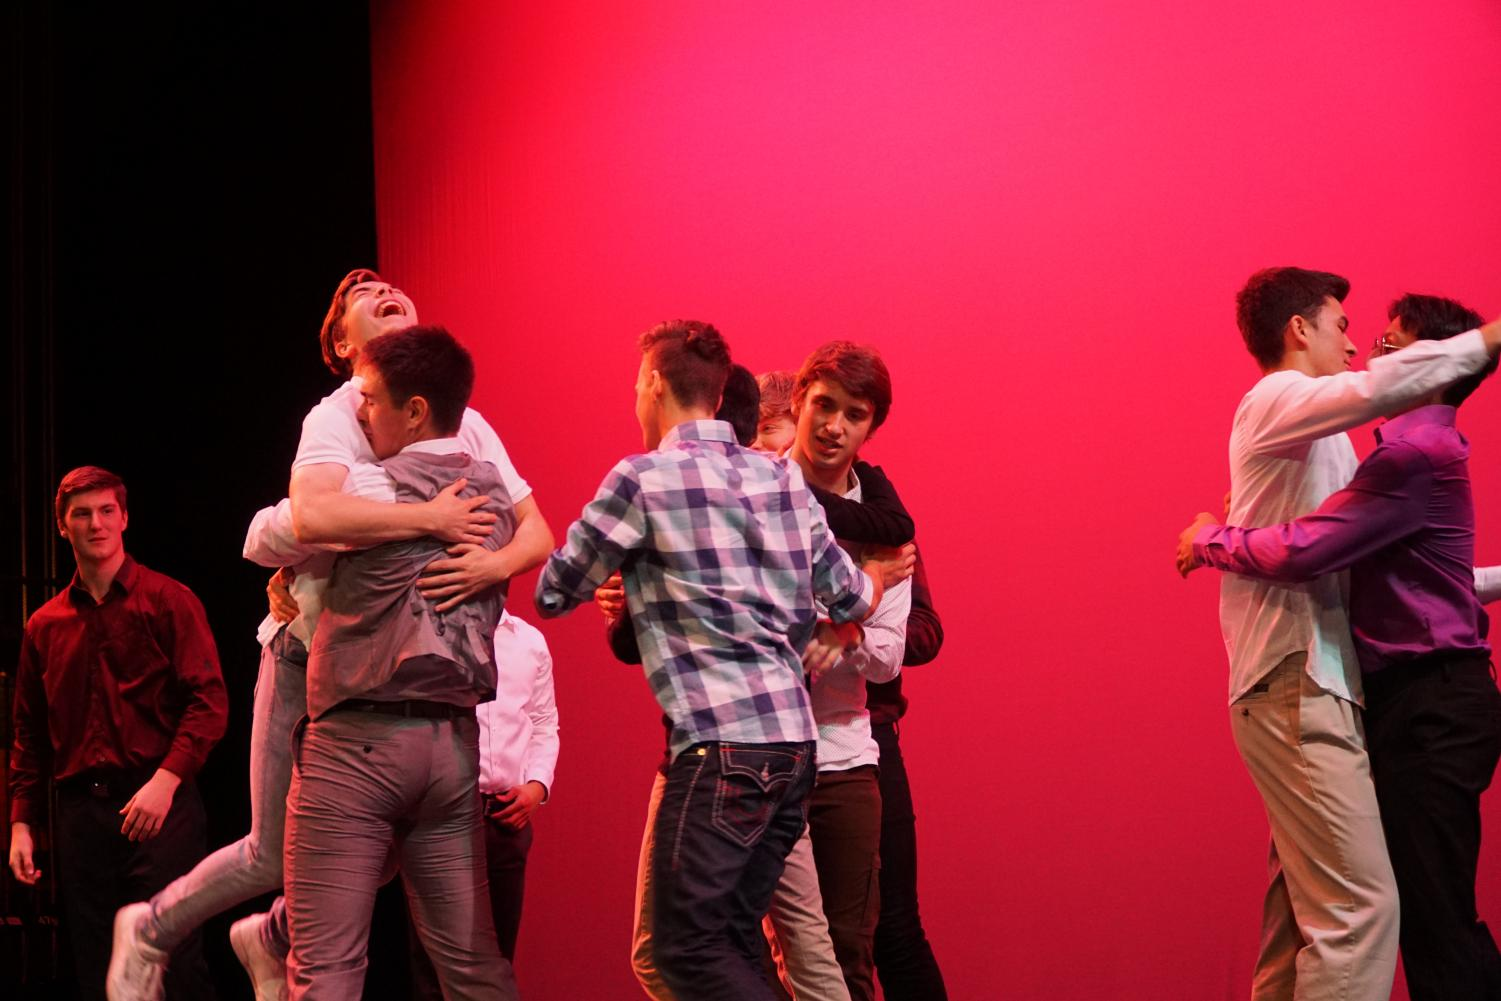 In this photo taken by Shorecrest student David Pike, the Mr. Shorecrest contestants rejoiced after their successful show. They congratulate each other after a long night of performances as possibly the last Mr. Shorecrest comes to an end.